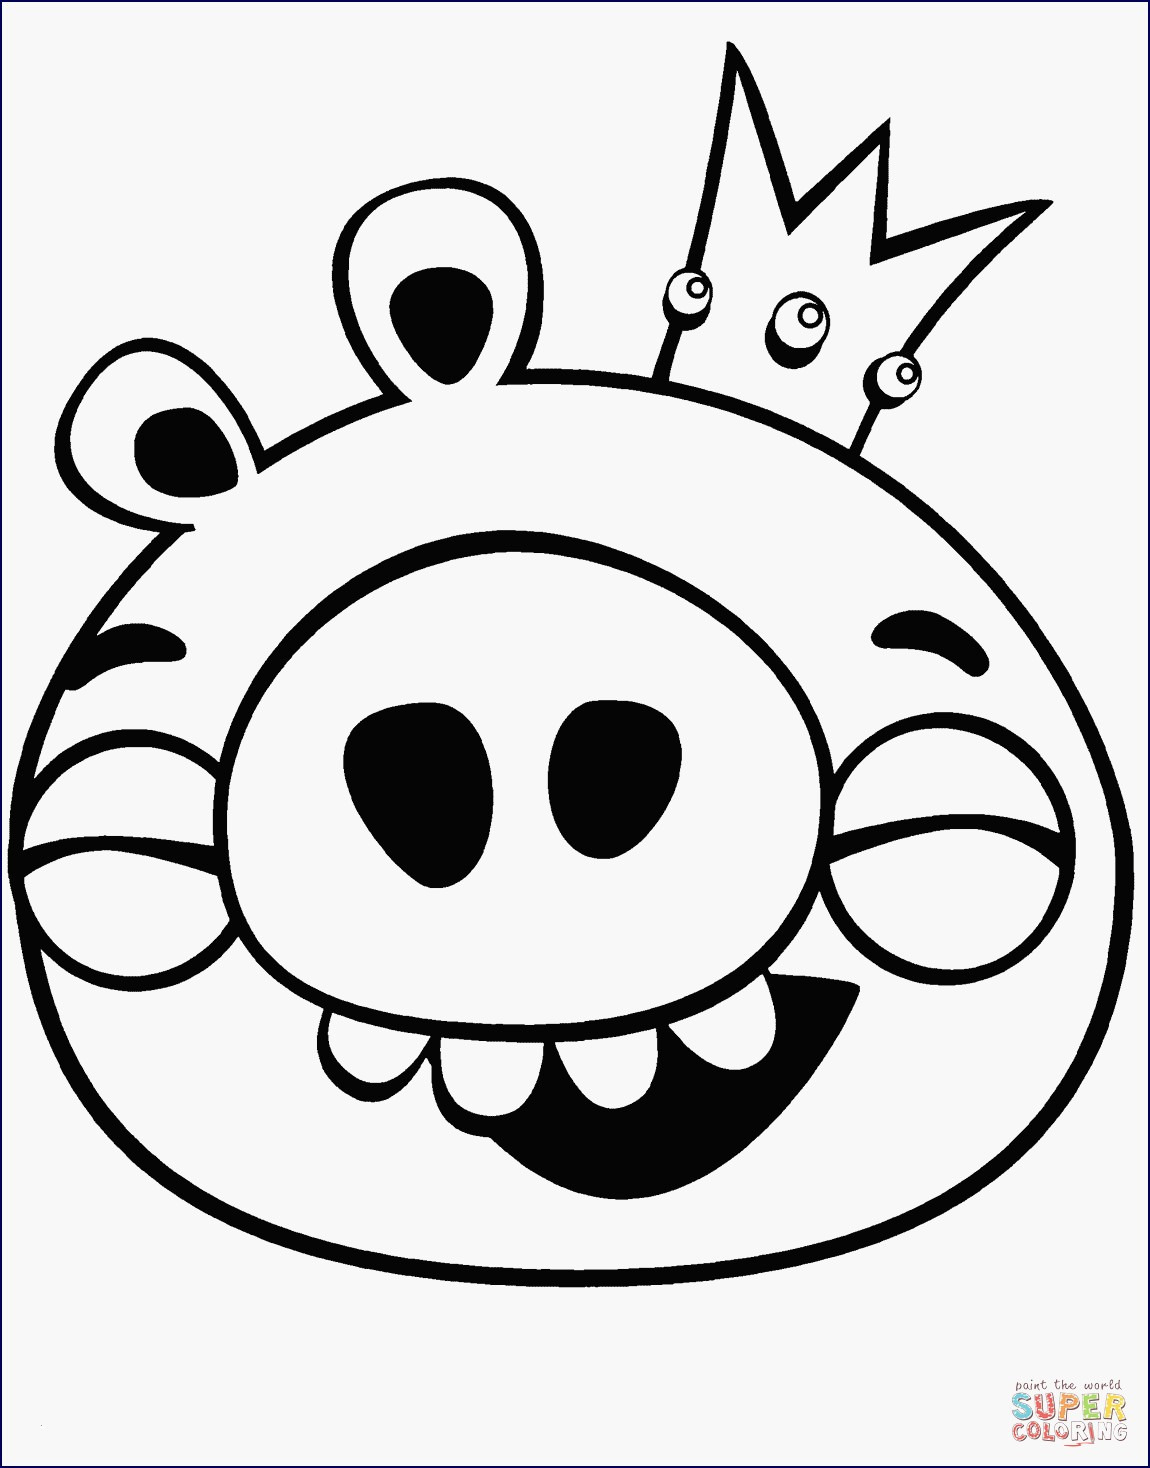 angry birds pigs coloring pages Collection-Angry Bird Pigs Coloring Pages Unique Am Besten Der Ausmalbilder 15-l